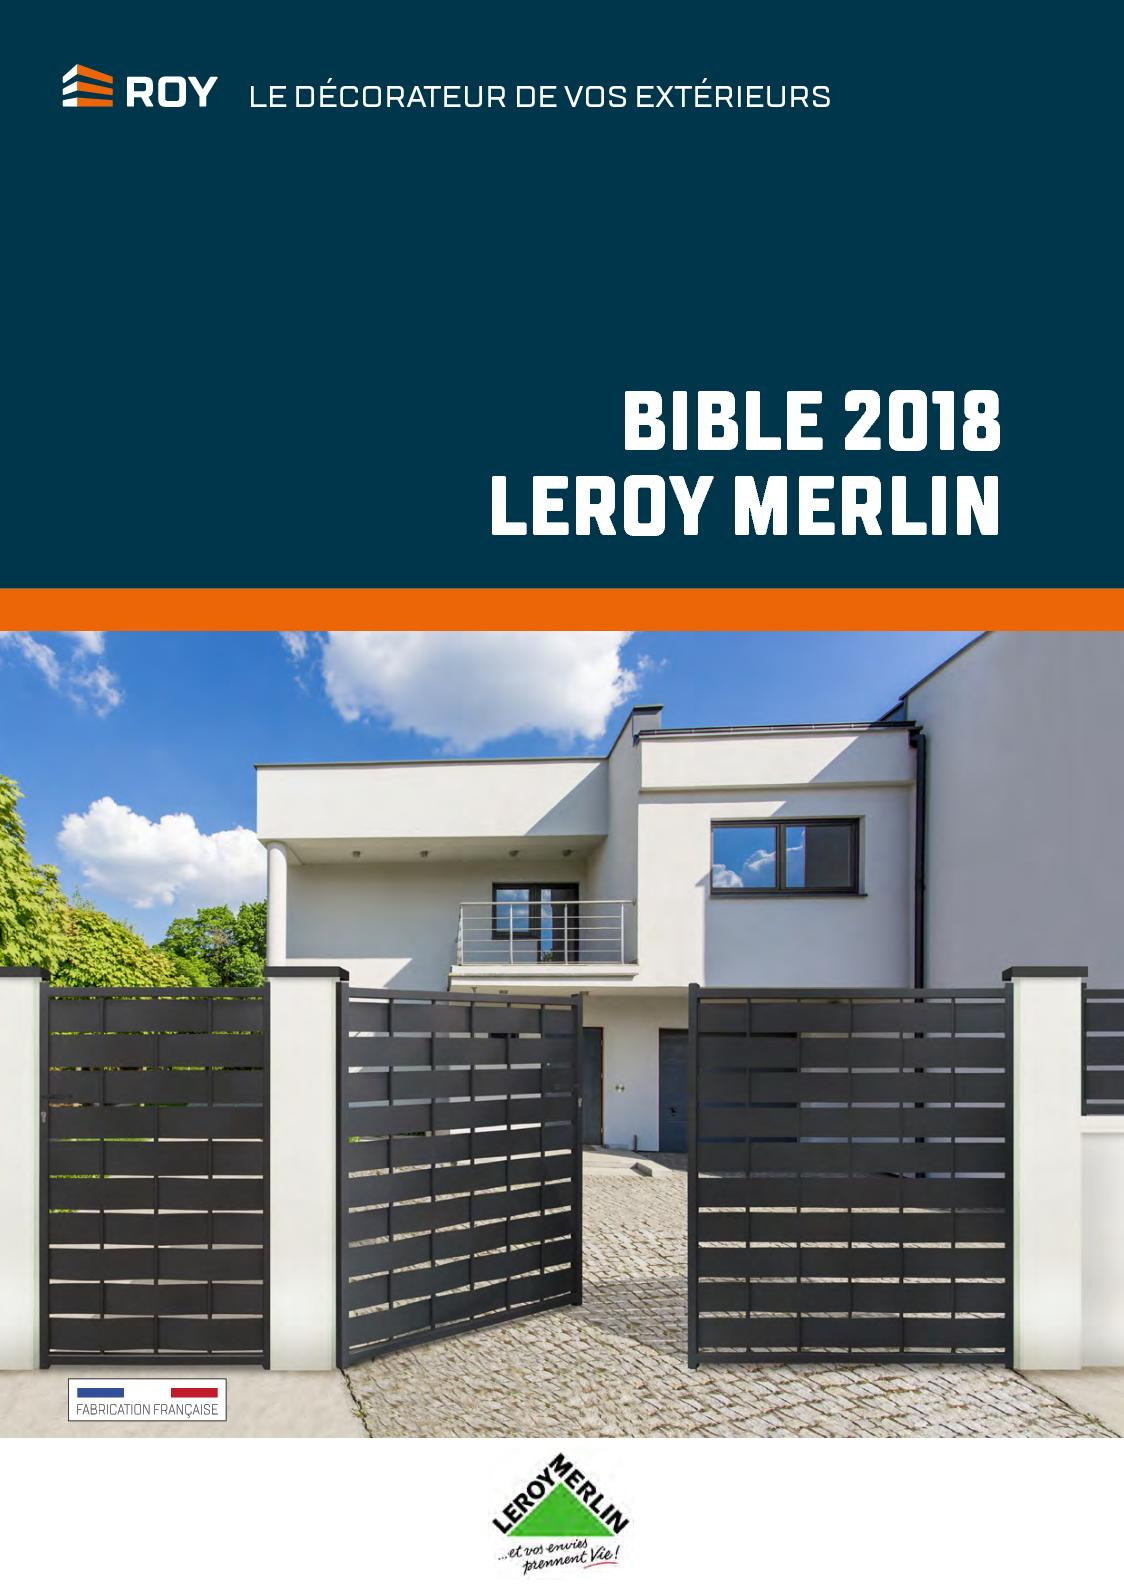 Element Pilier Leroy Merlin calaméo - bible leroy merlin 2018